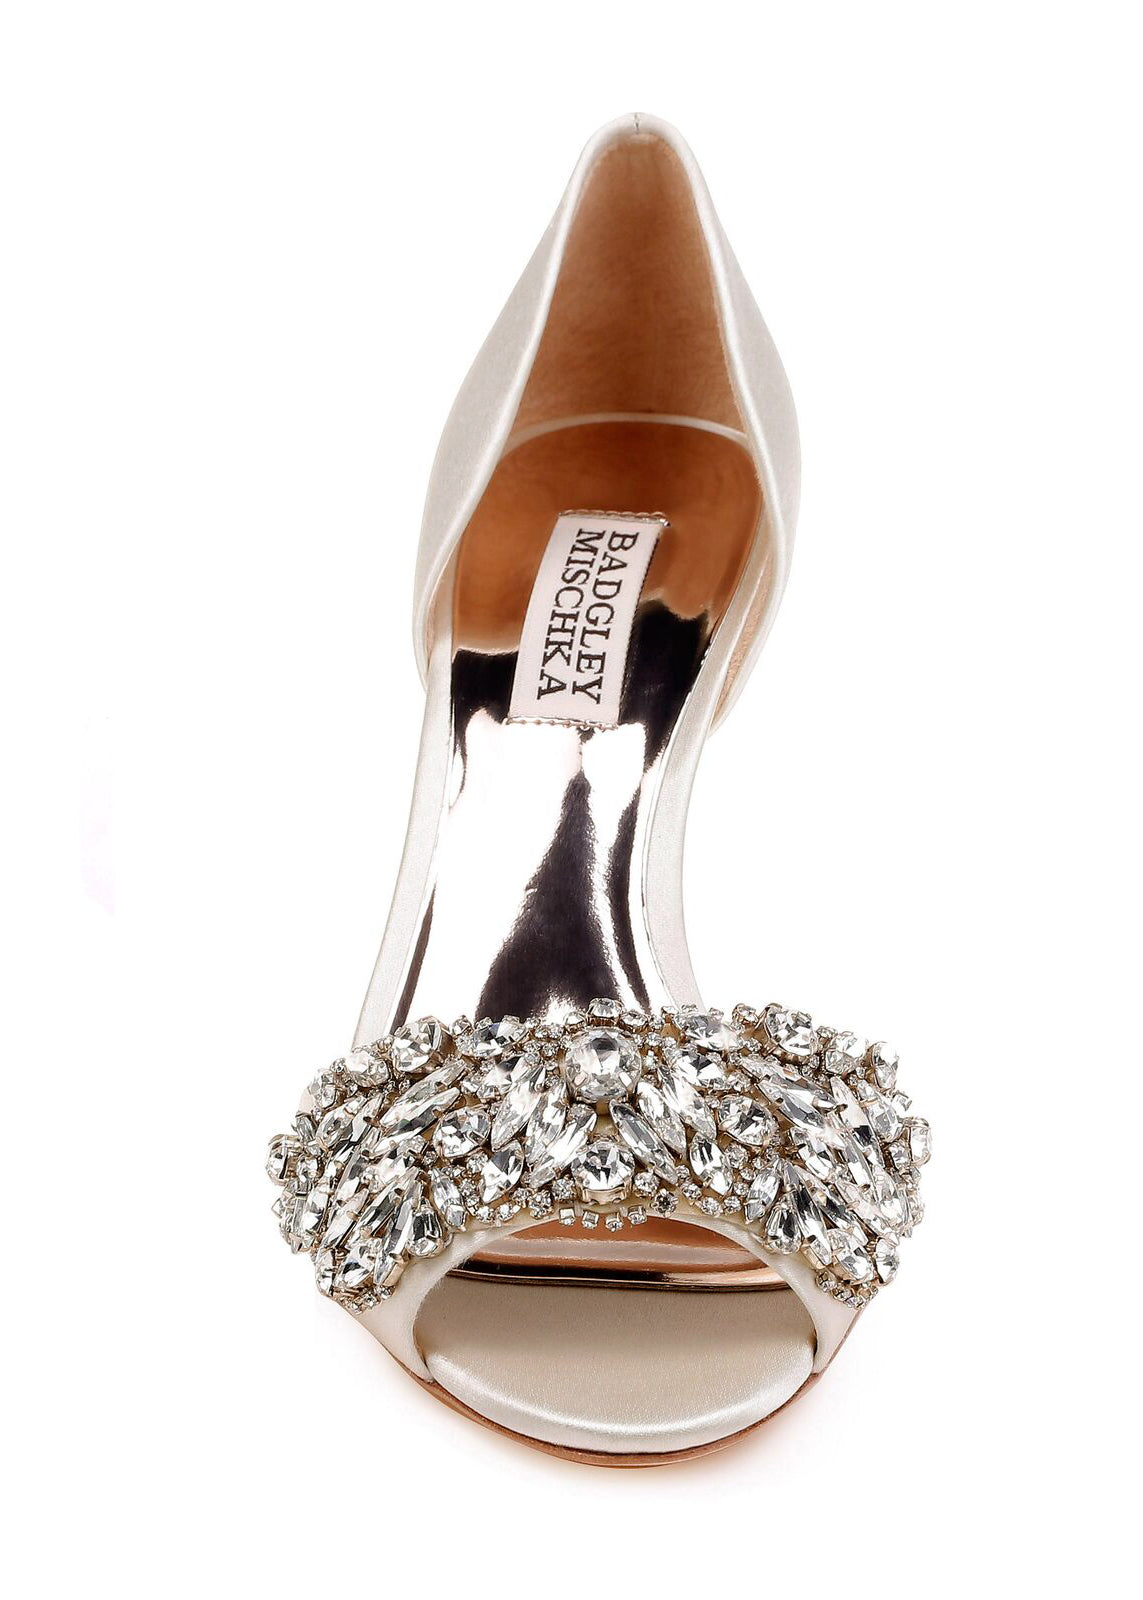 Hansen - Shoes - Badgley Mischka - Eternal Bridal